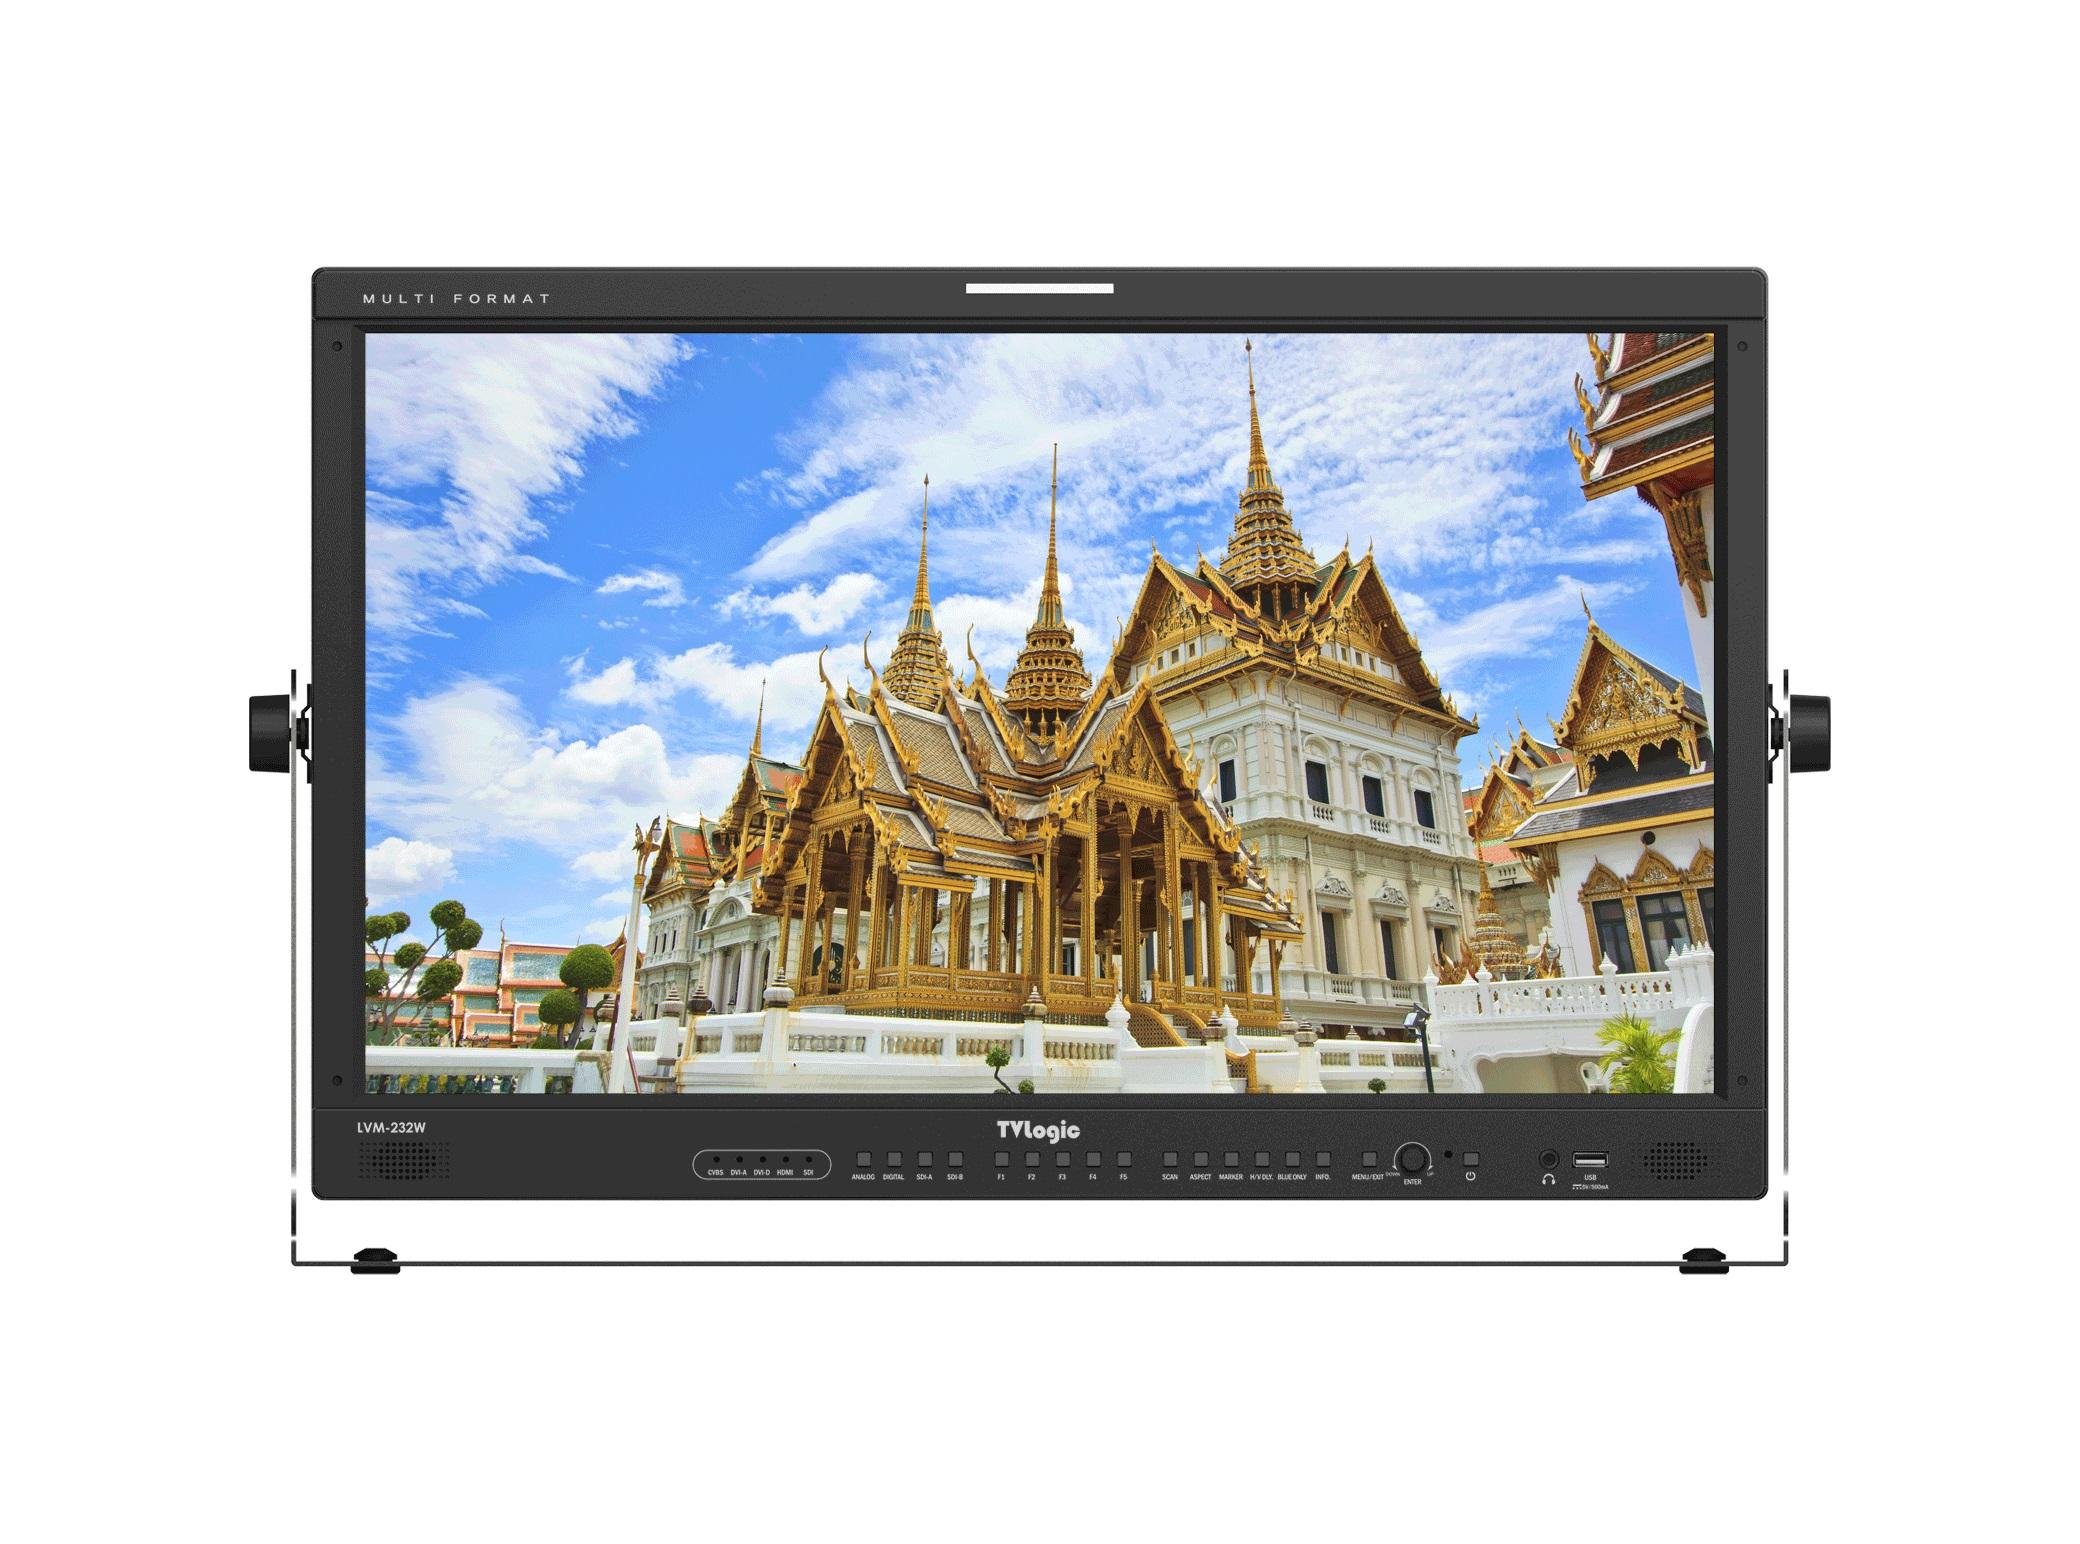 TVlogic LVM-232W-A 23 inch 3G-SDI/DVI/HDMI Entry-Level Full-Featured 1920x1080 Wide Viewing IPS LCD Monitor